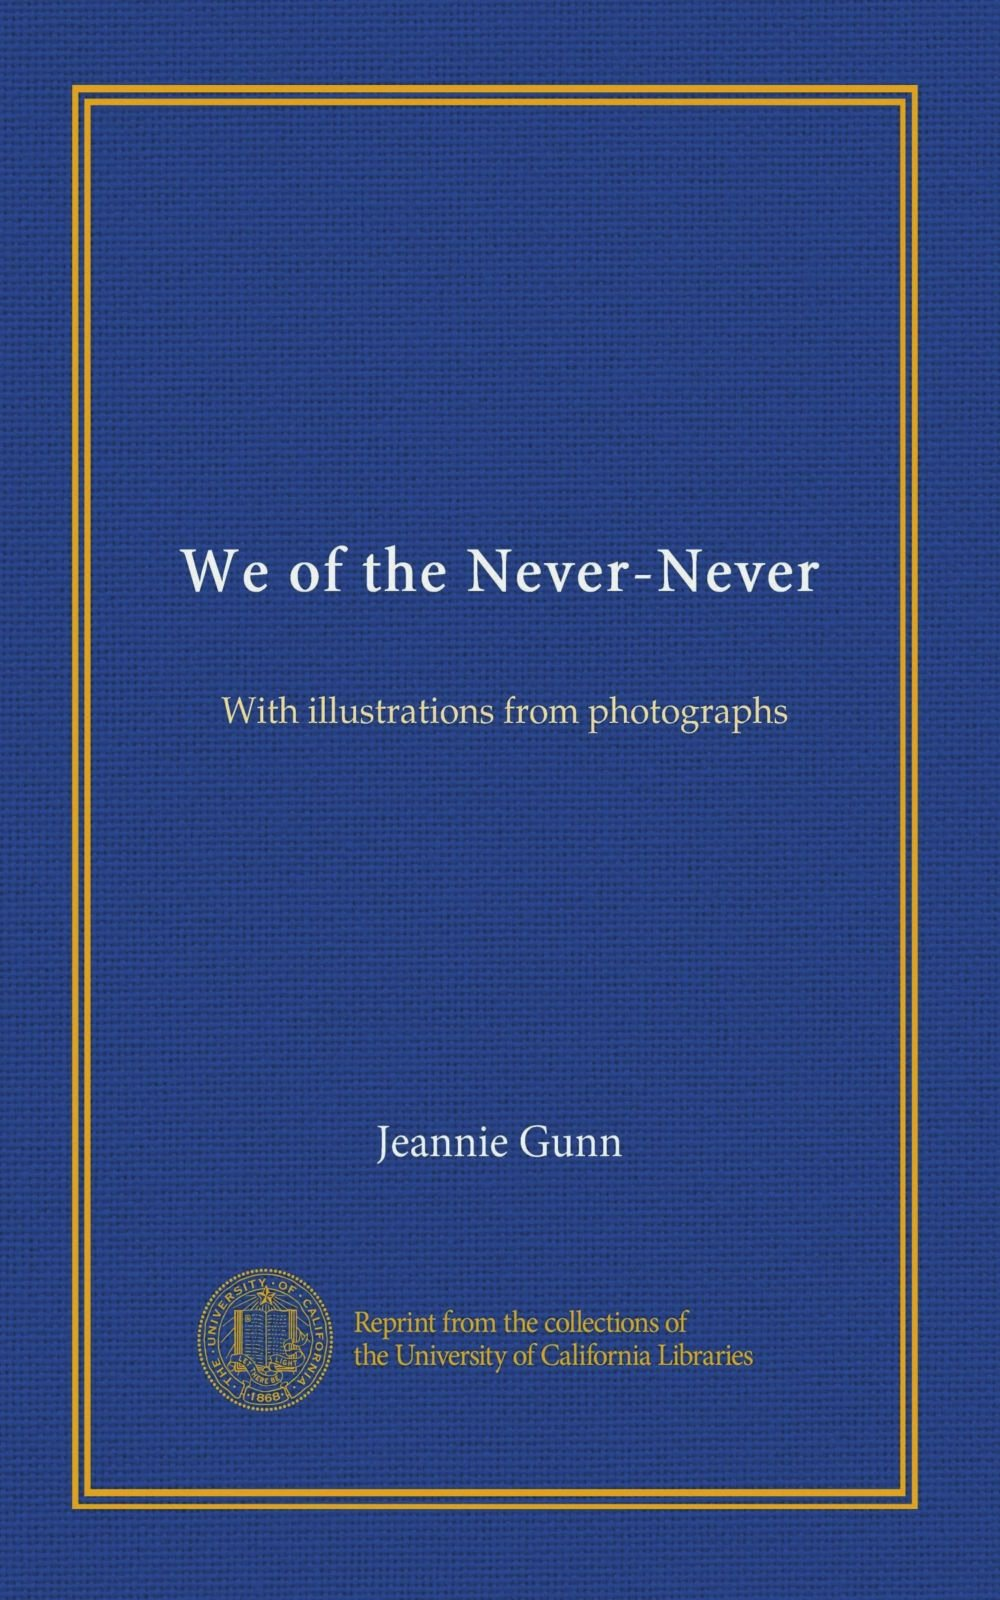 We of the Never-Never: With illustrations from photographs